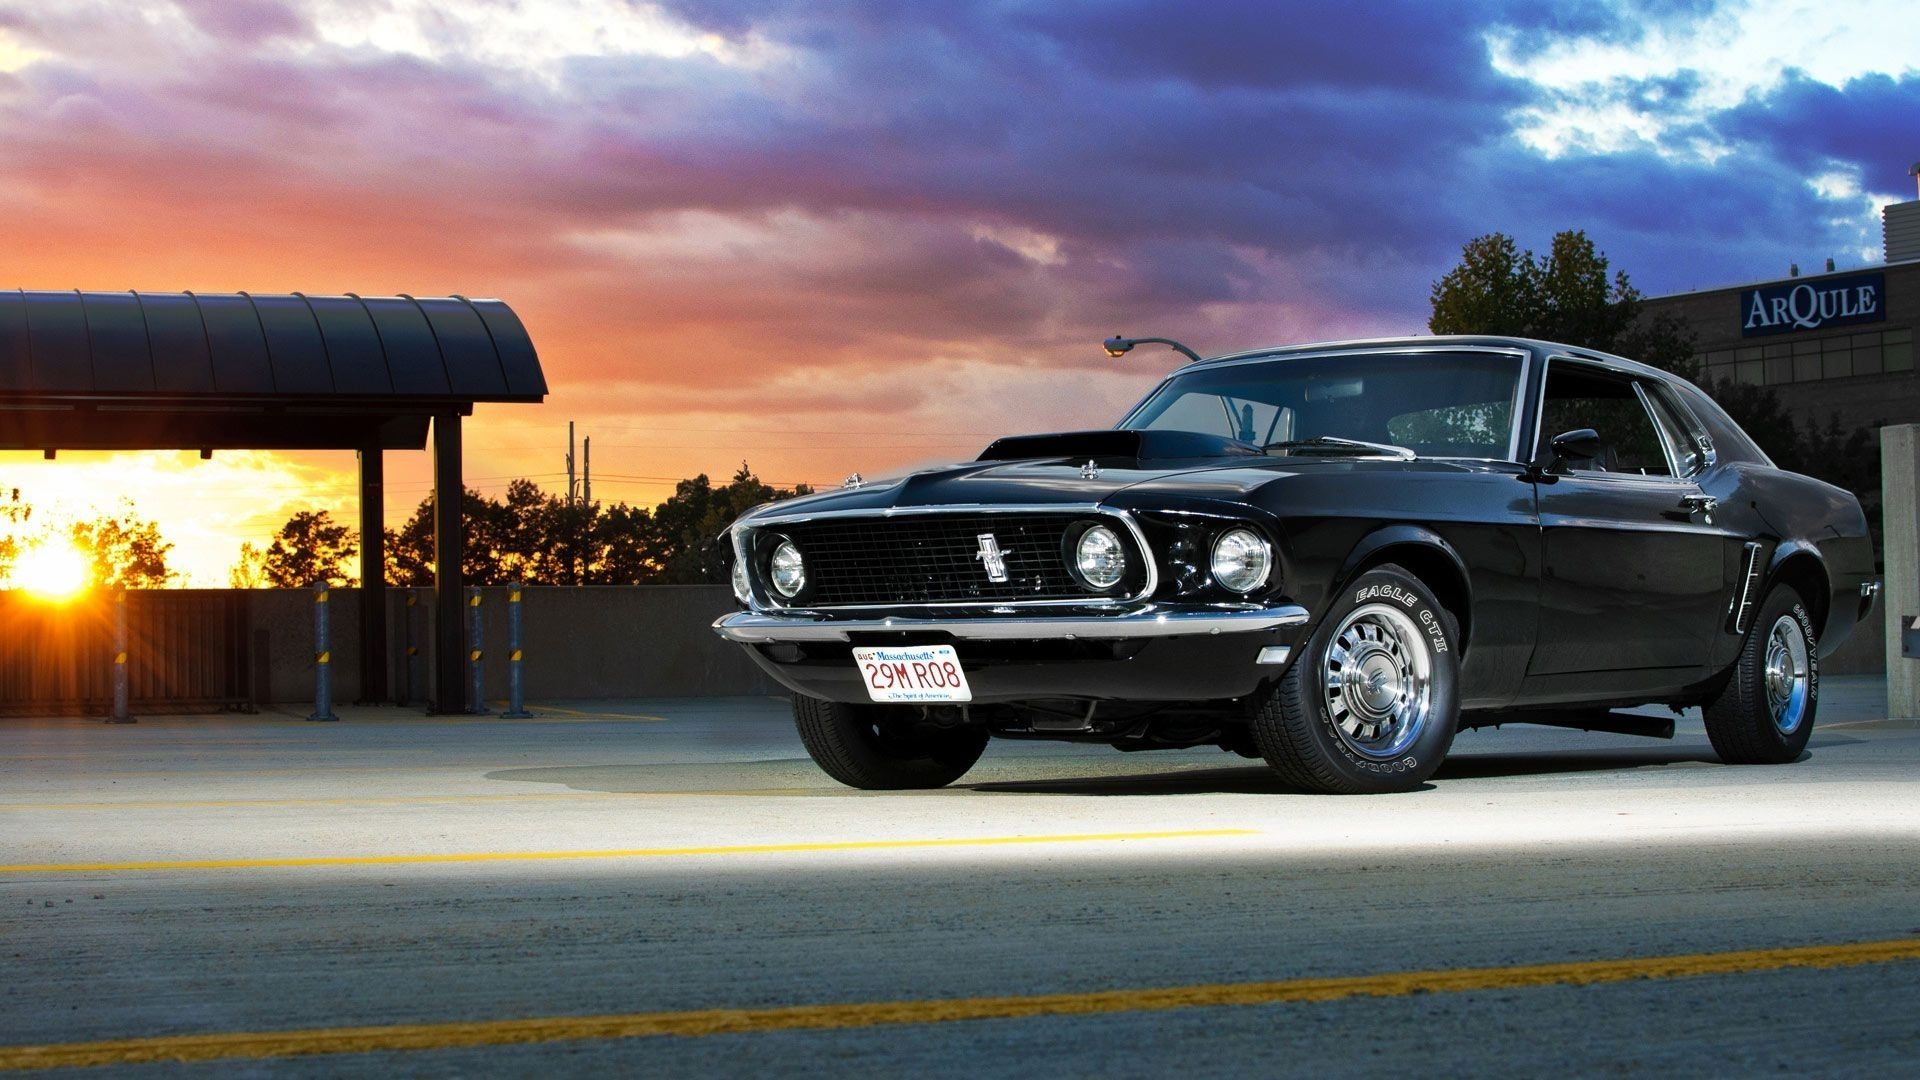 classic ford mustang wallpapers group (79+)